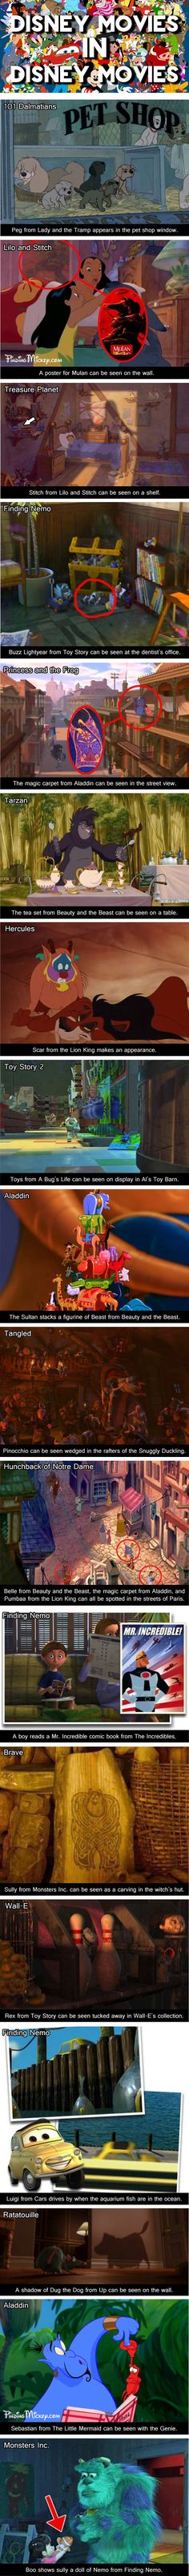 Disney Movies Inside Other Disney Movies...